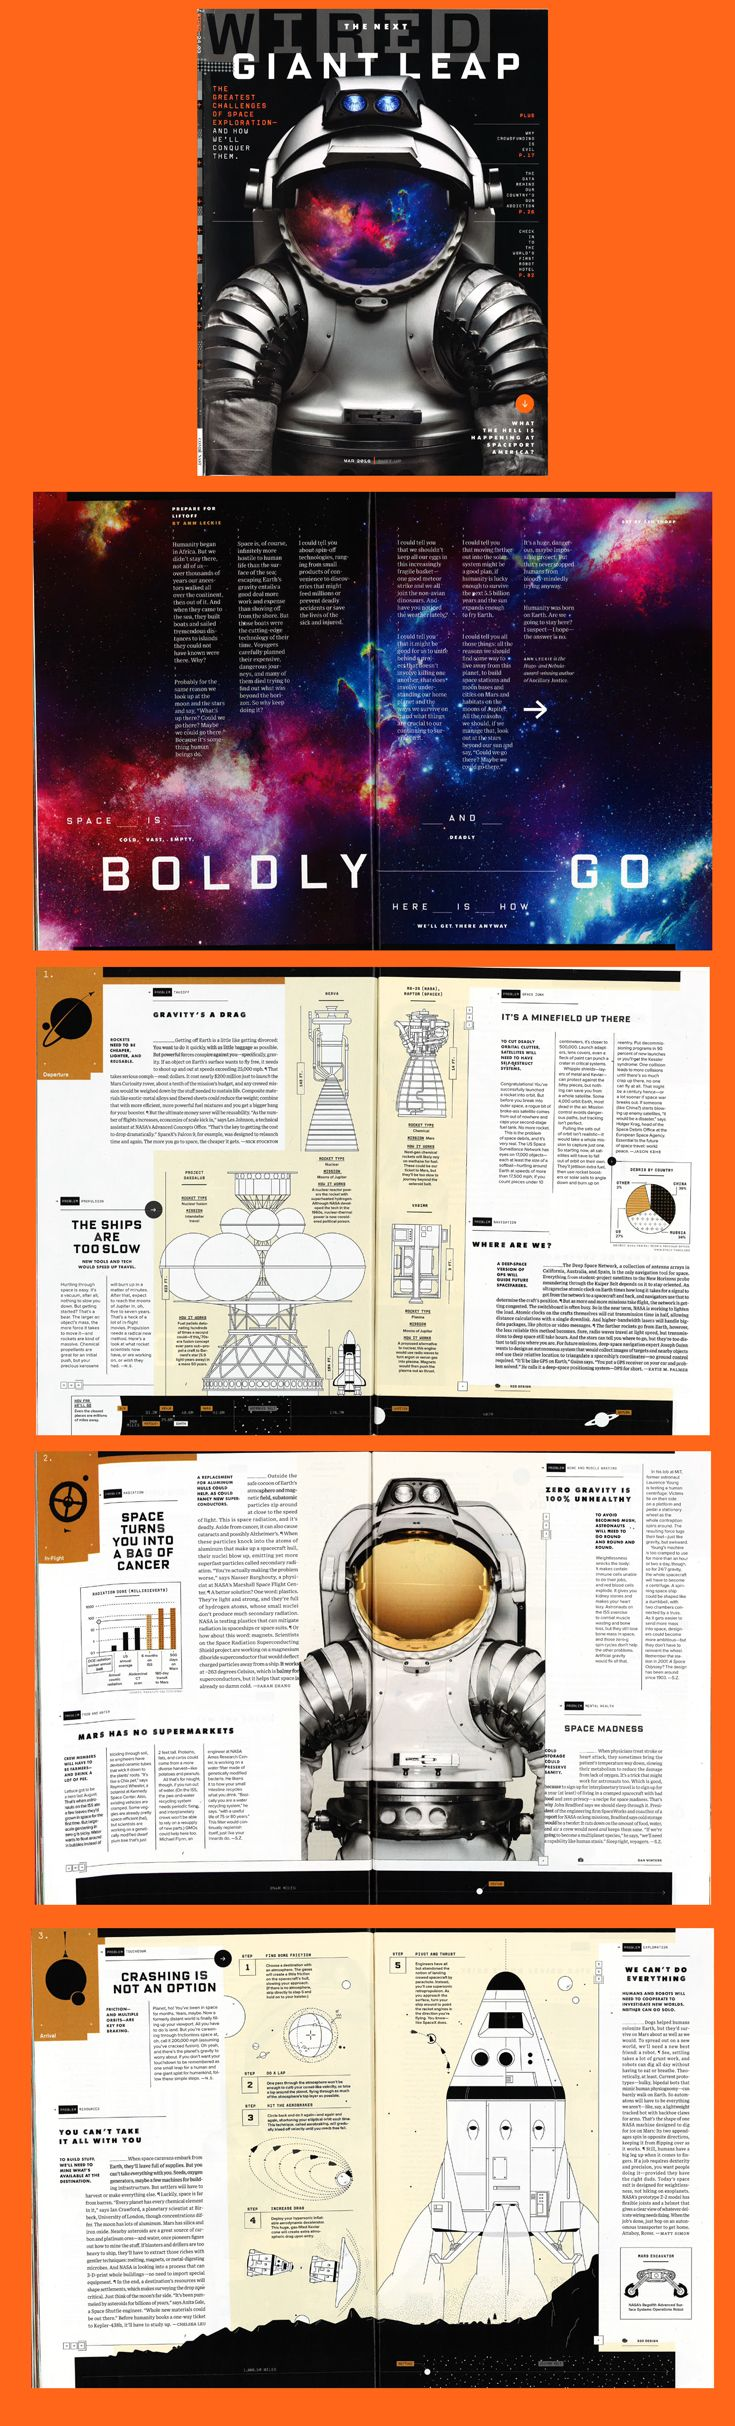 223 best Wired magazine images on Pinterest | Infographic ...